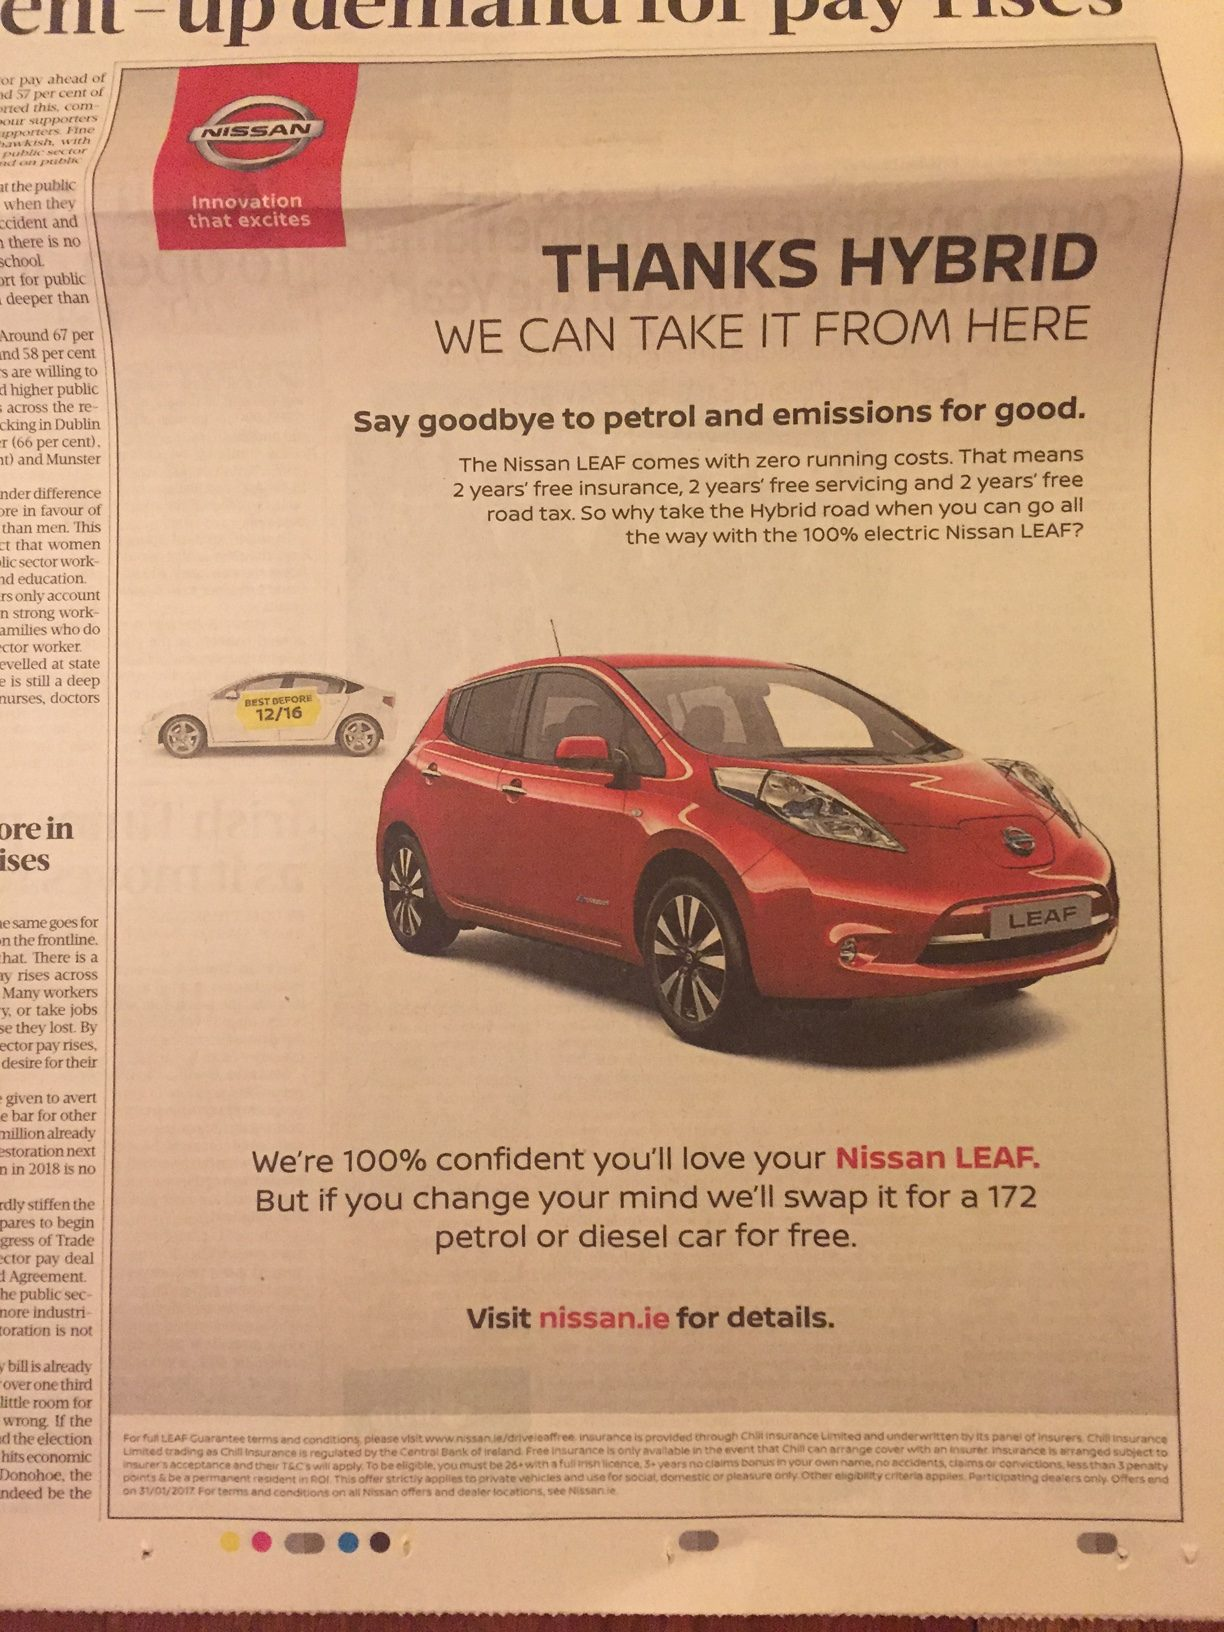 Nissan – thanks hybrid we can take it from here